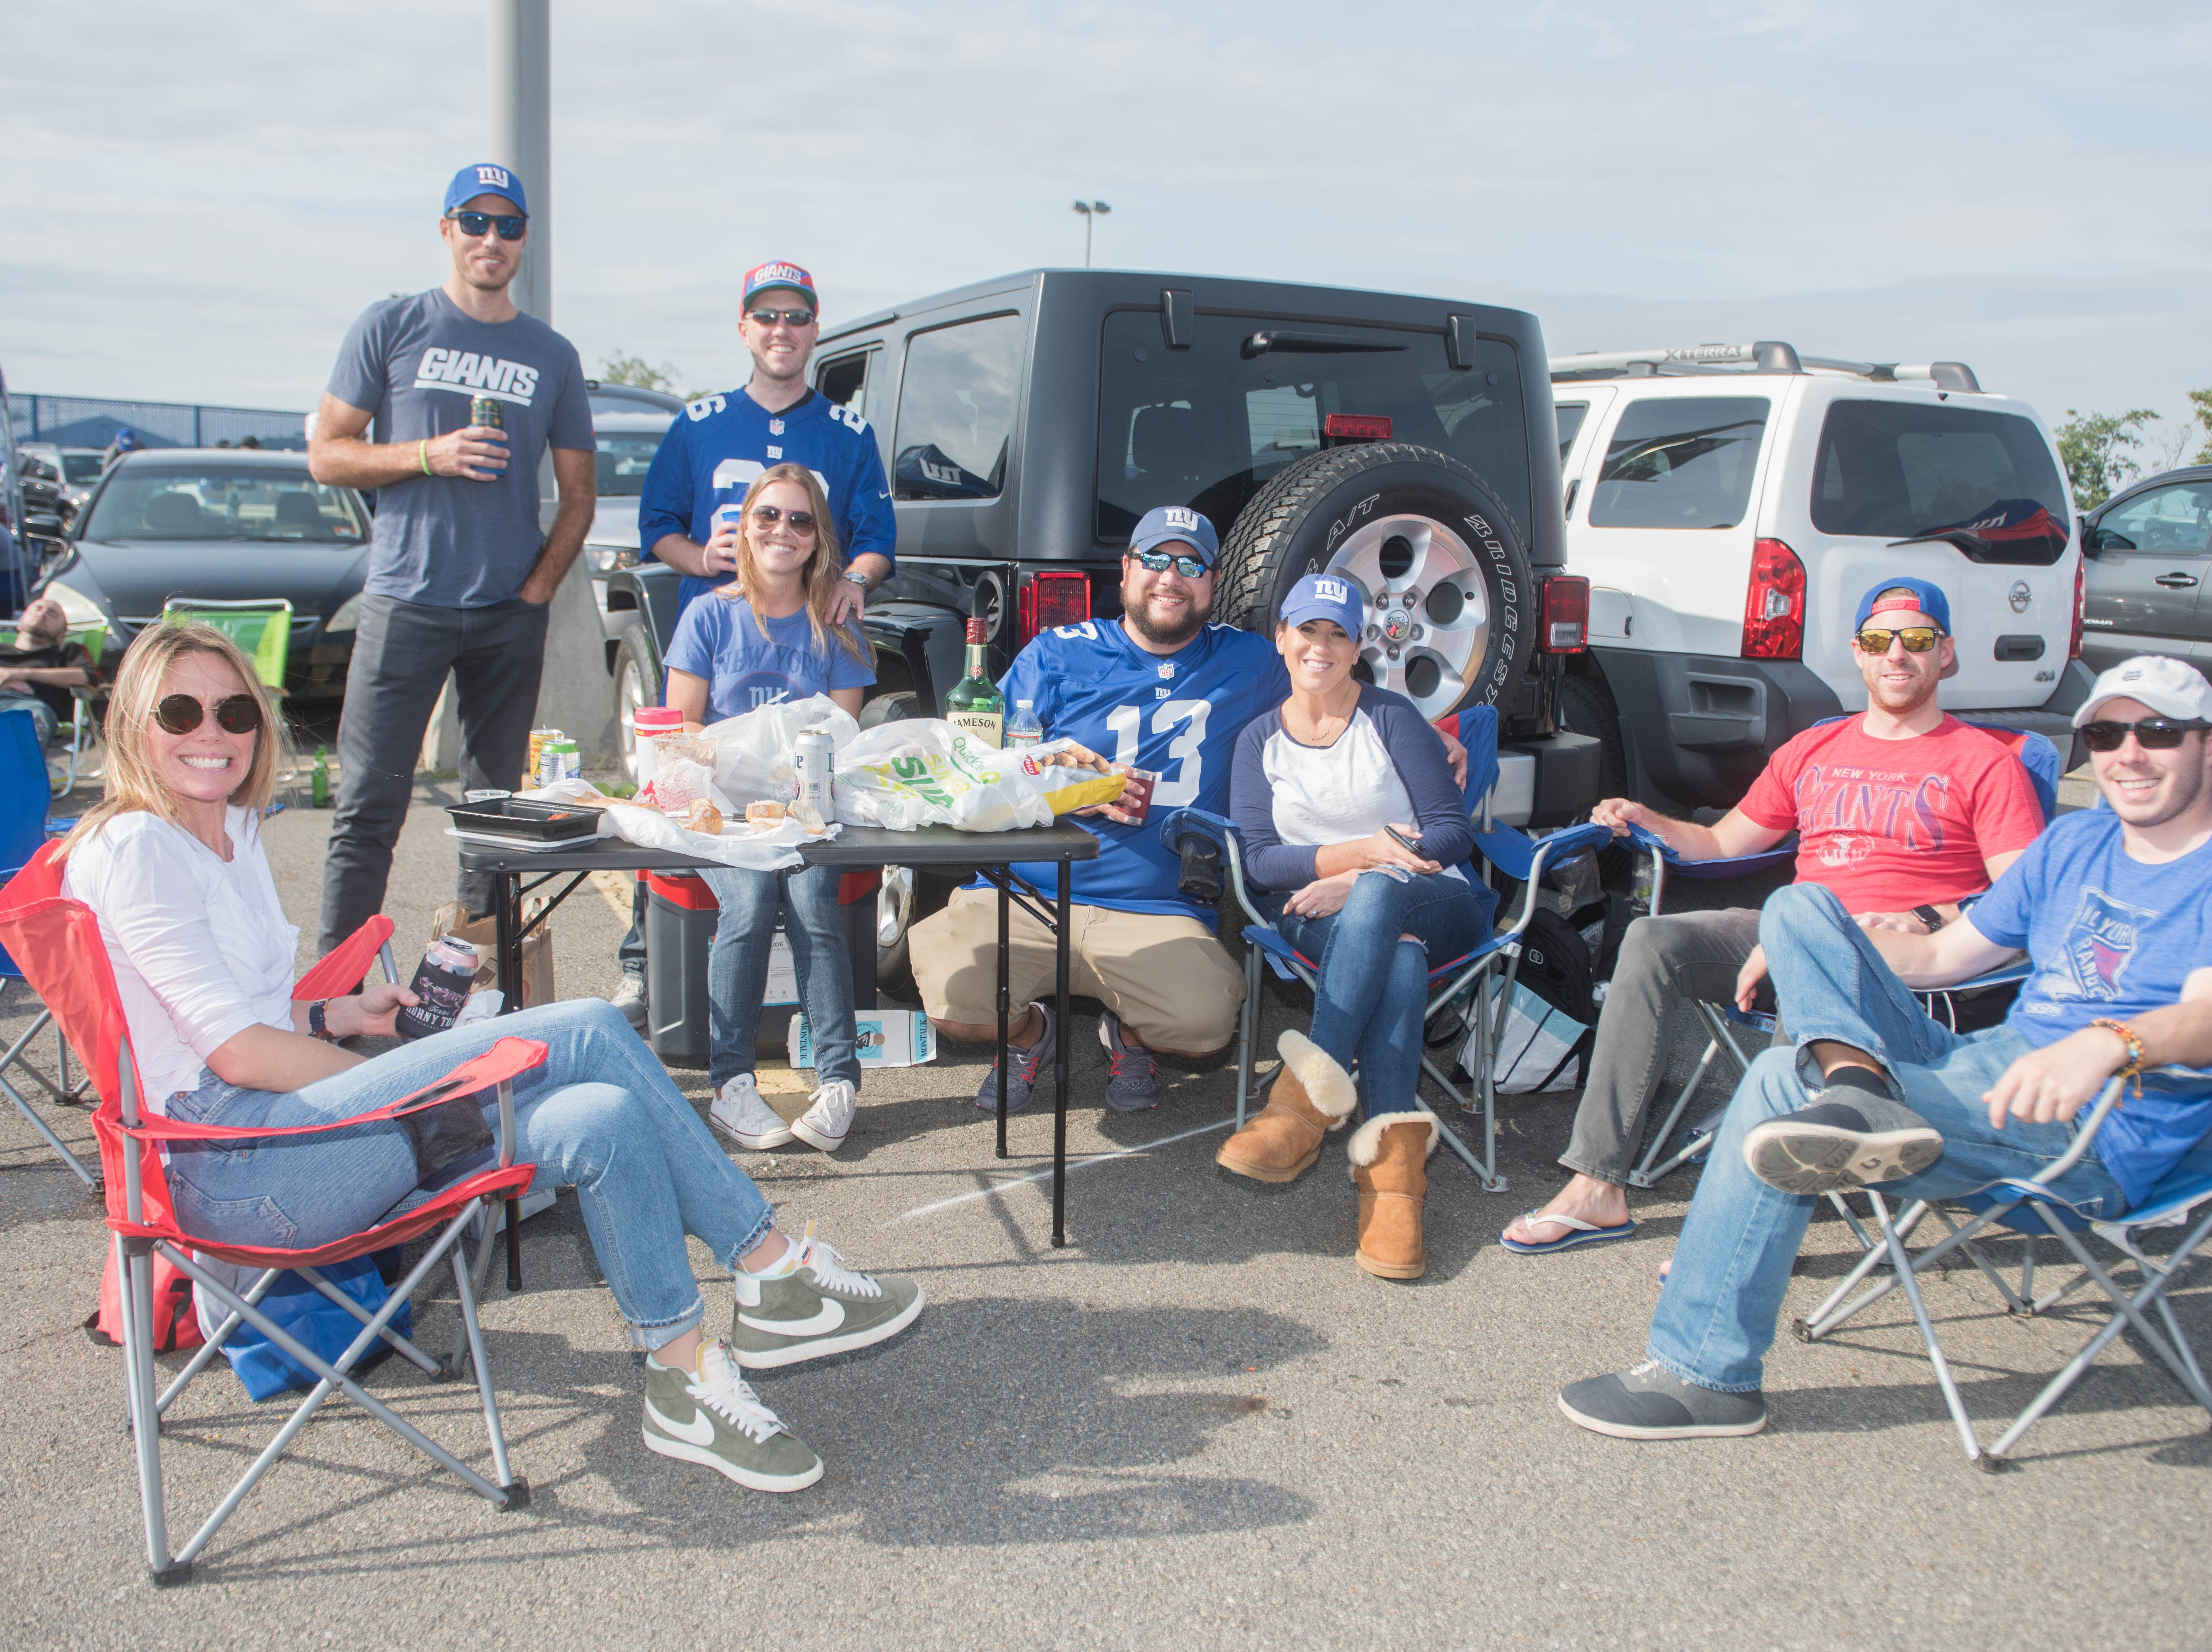 Meg, Joe, Ryan, Carlie, Doug, Jessie, Chaz and Mike at the Giants vs. Saints tailgate party, Sunday, Sept. 30, 2018.